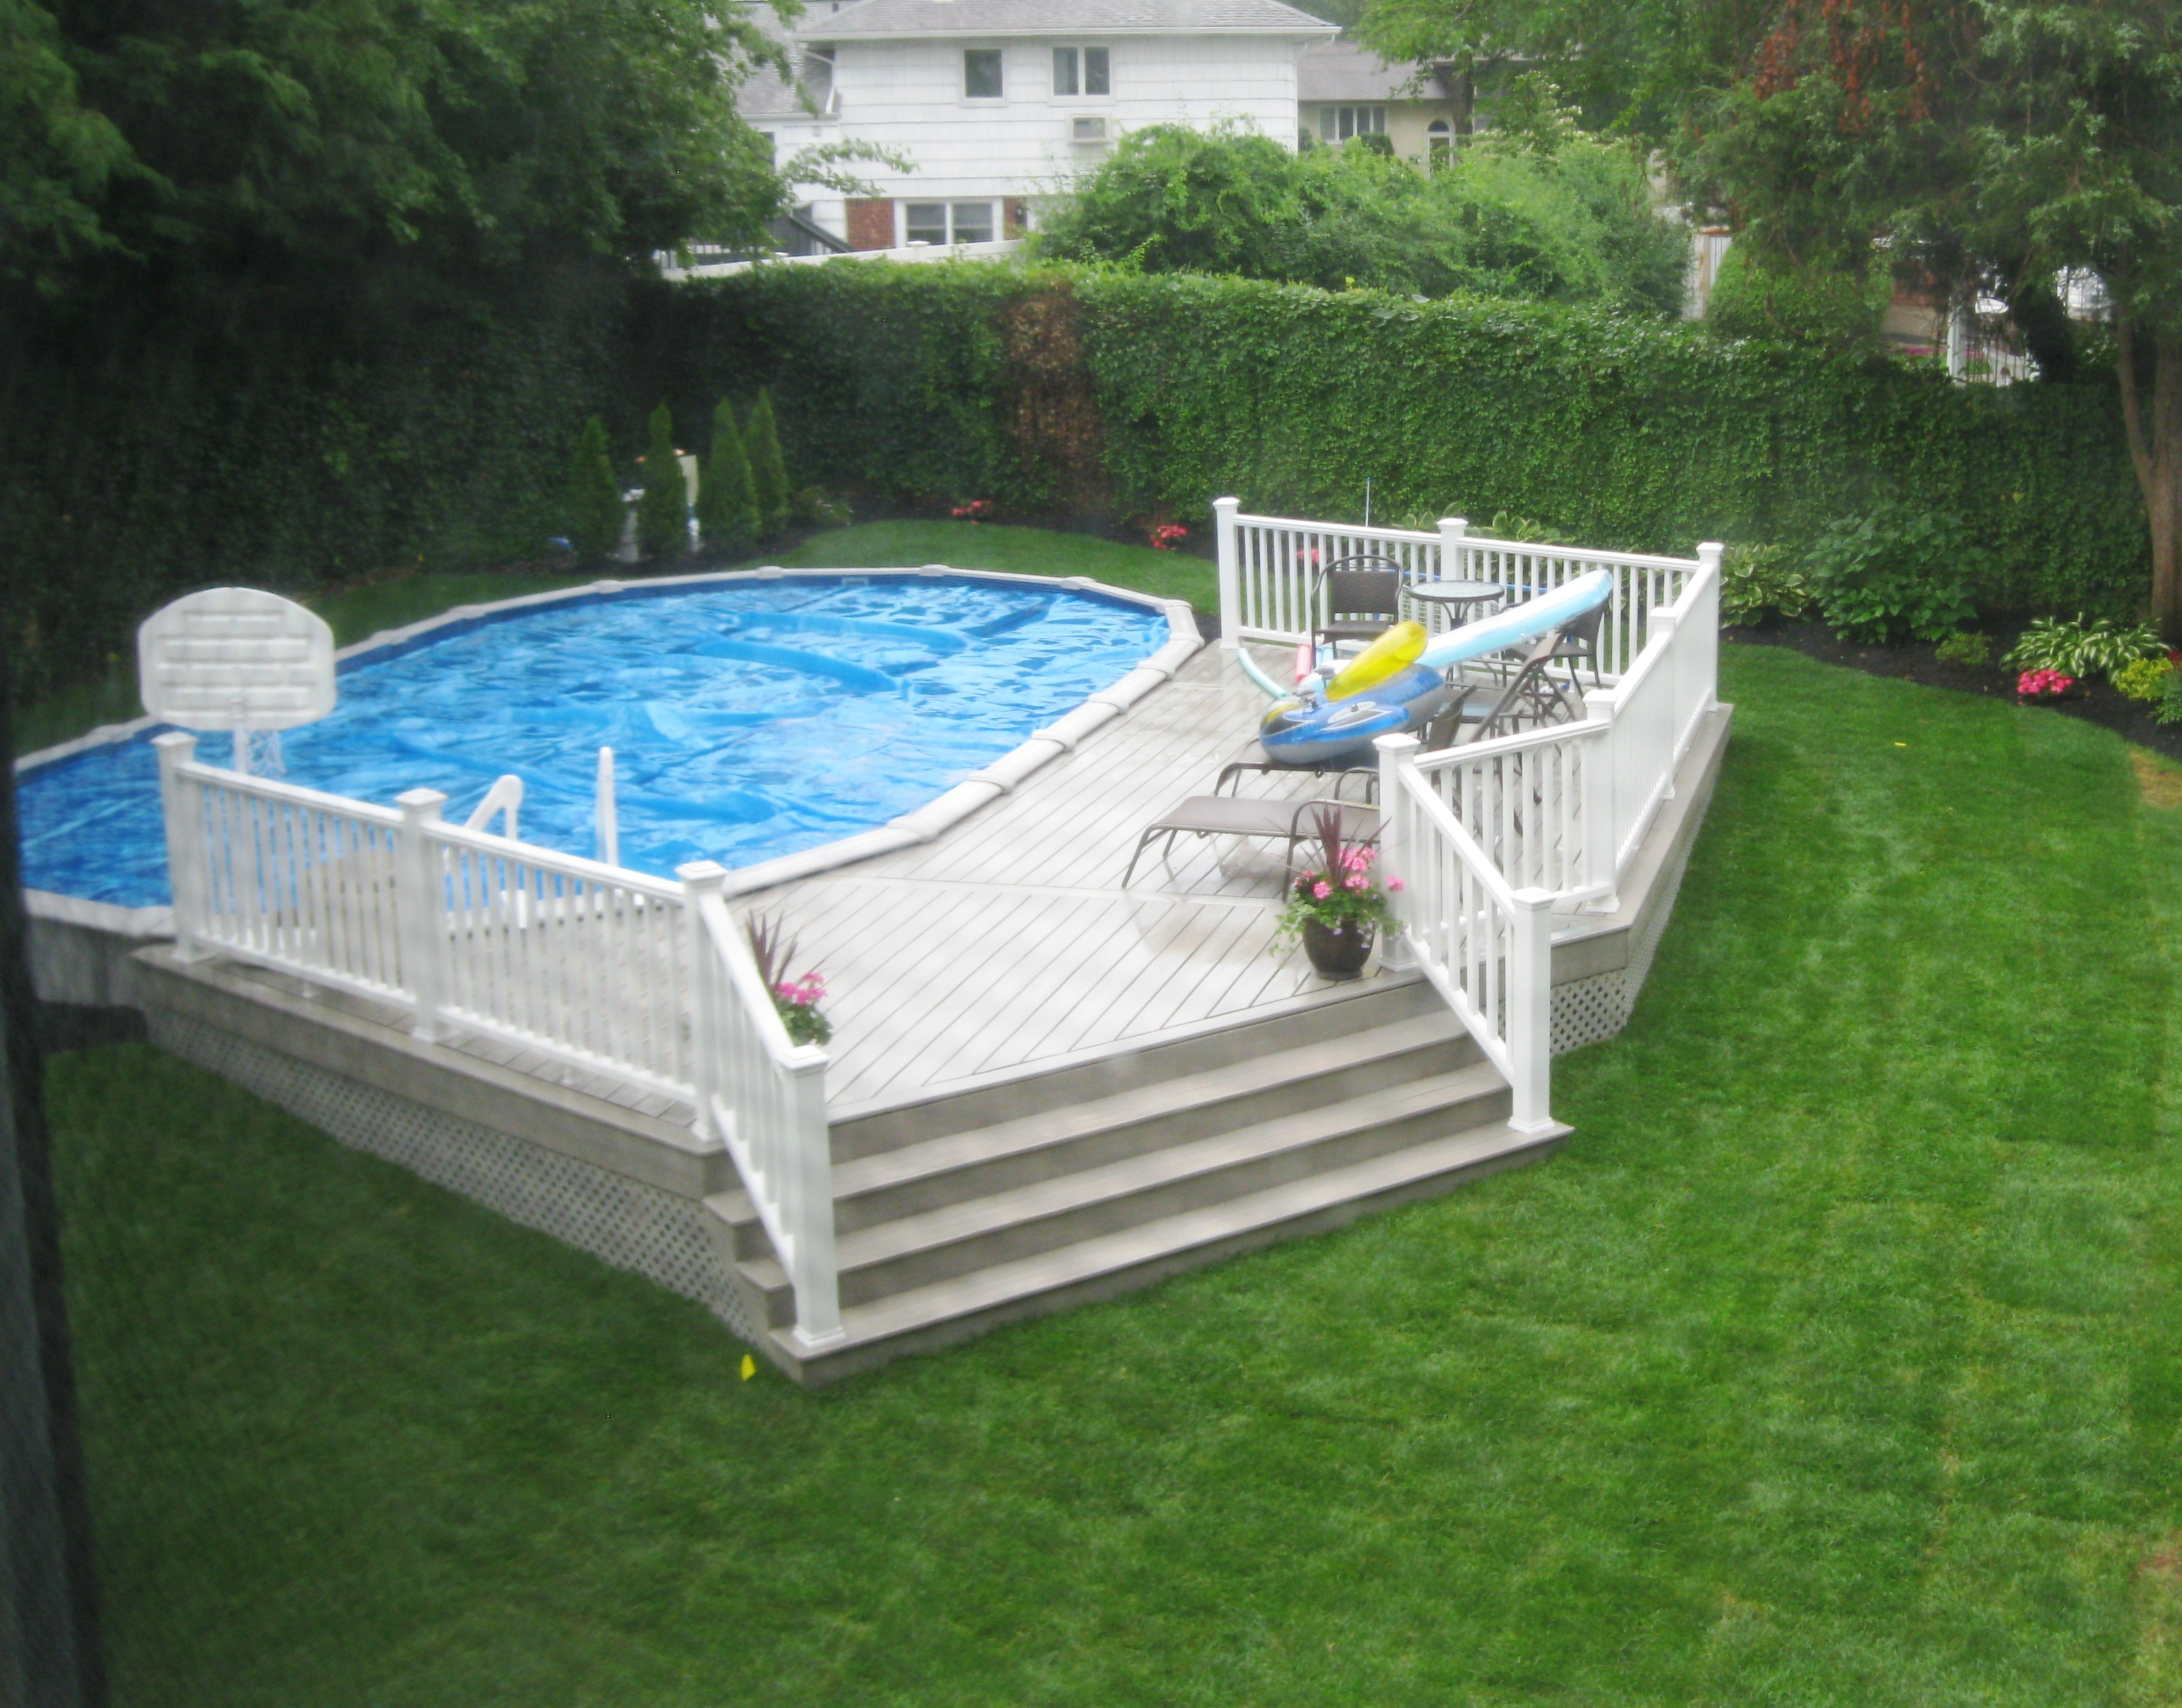 Ideas semi inground pool ideas for exciting backyard Above ground pool installation ideas